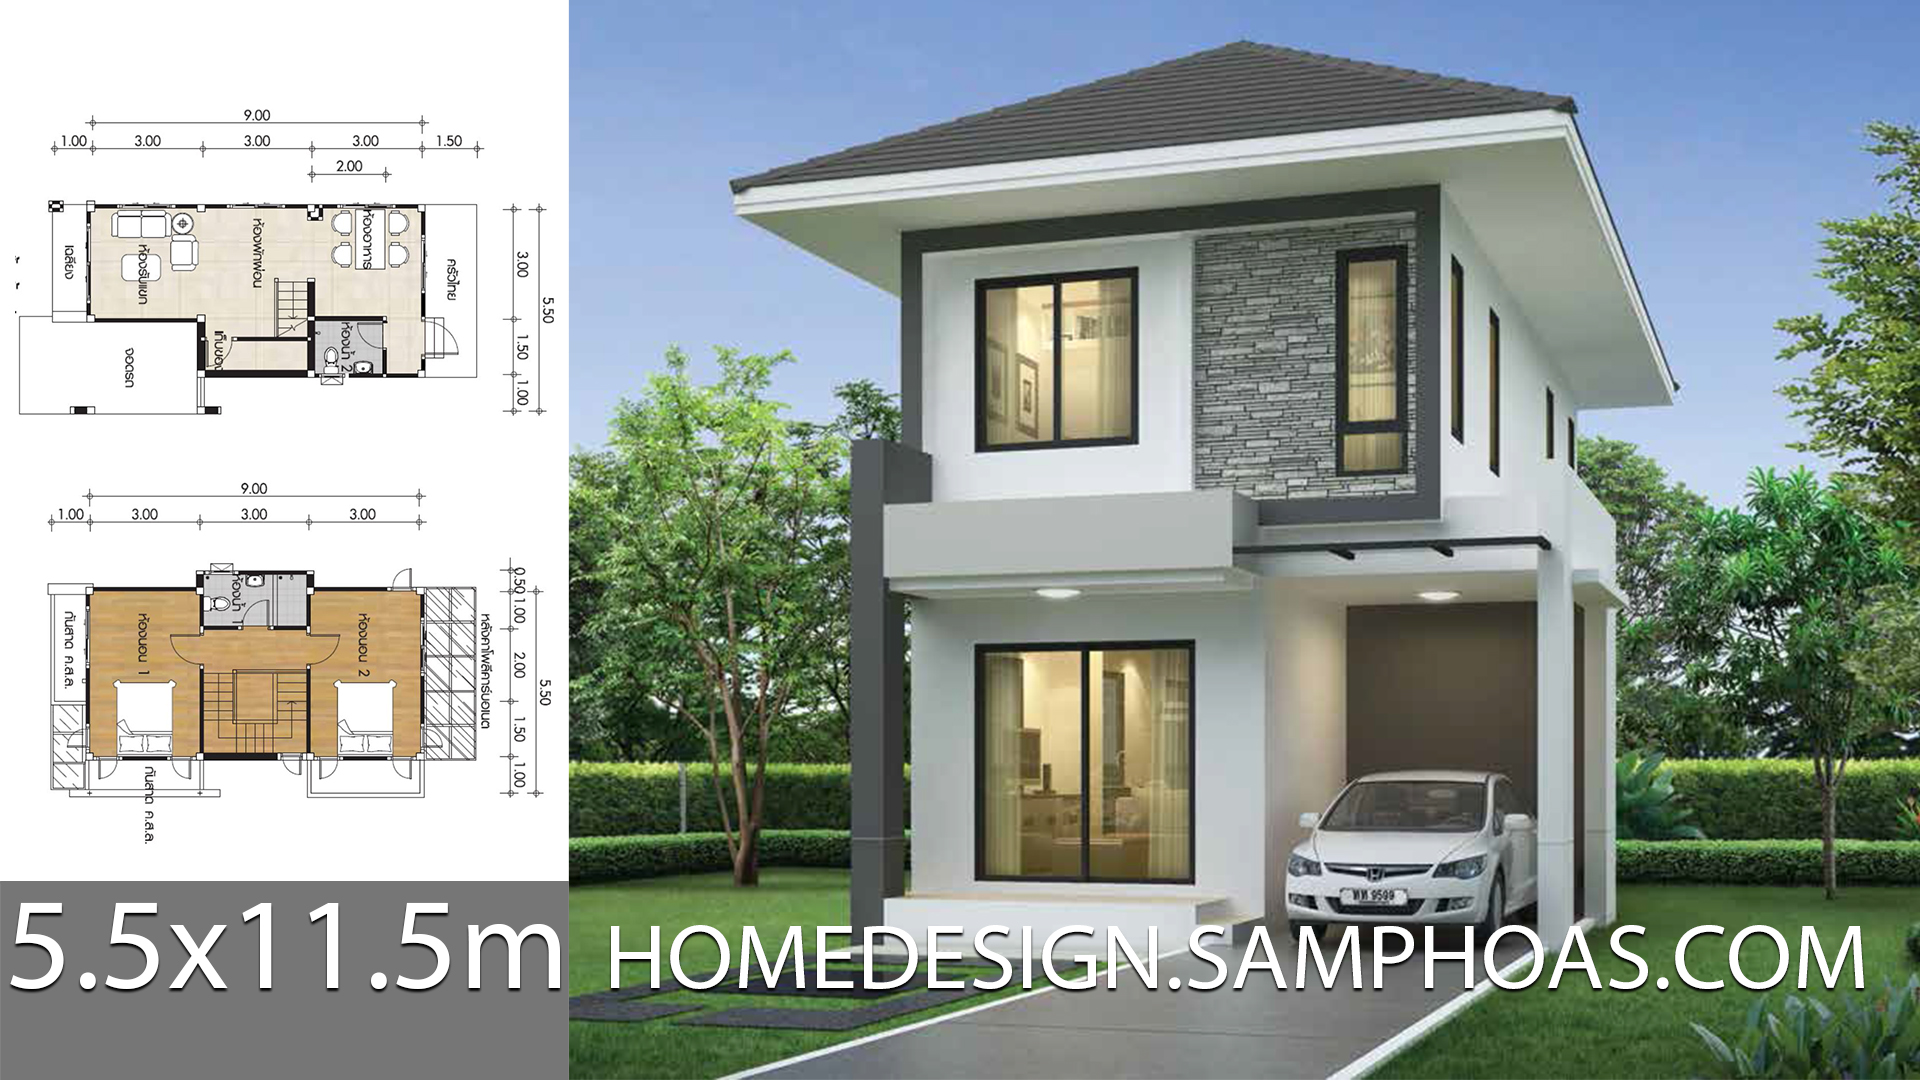 Small House Design Plans 5 5x11 5m With 2 Bedrooms Home